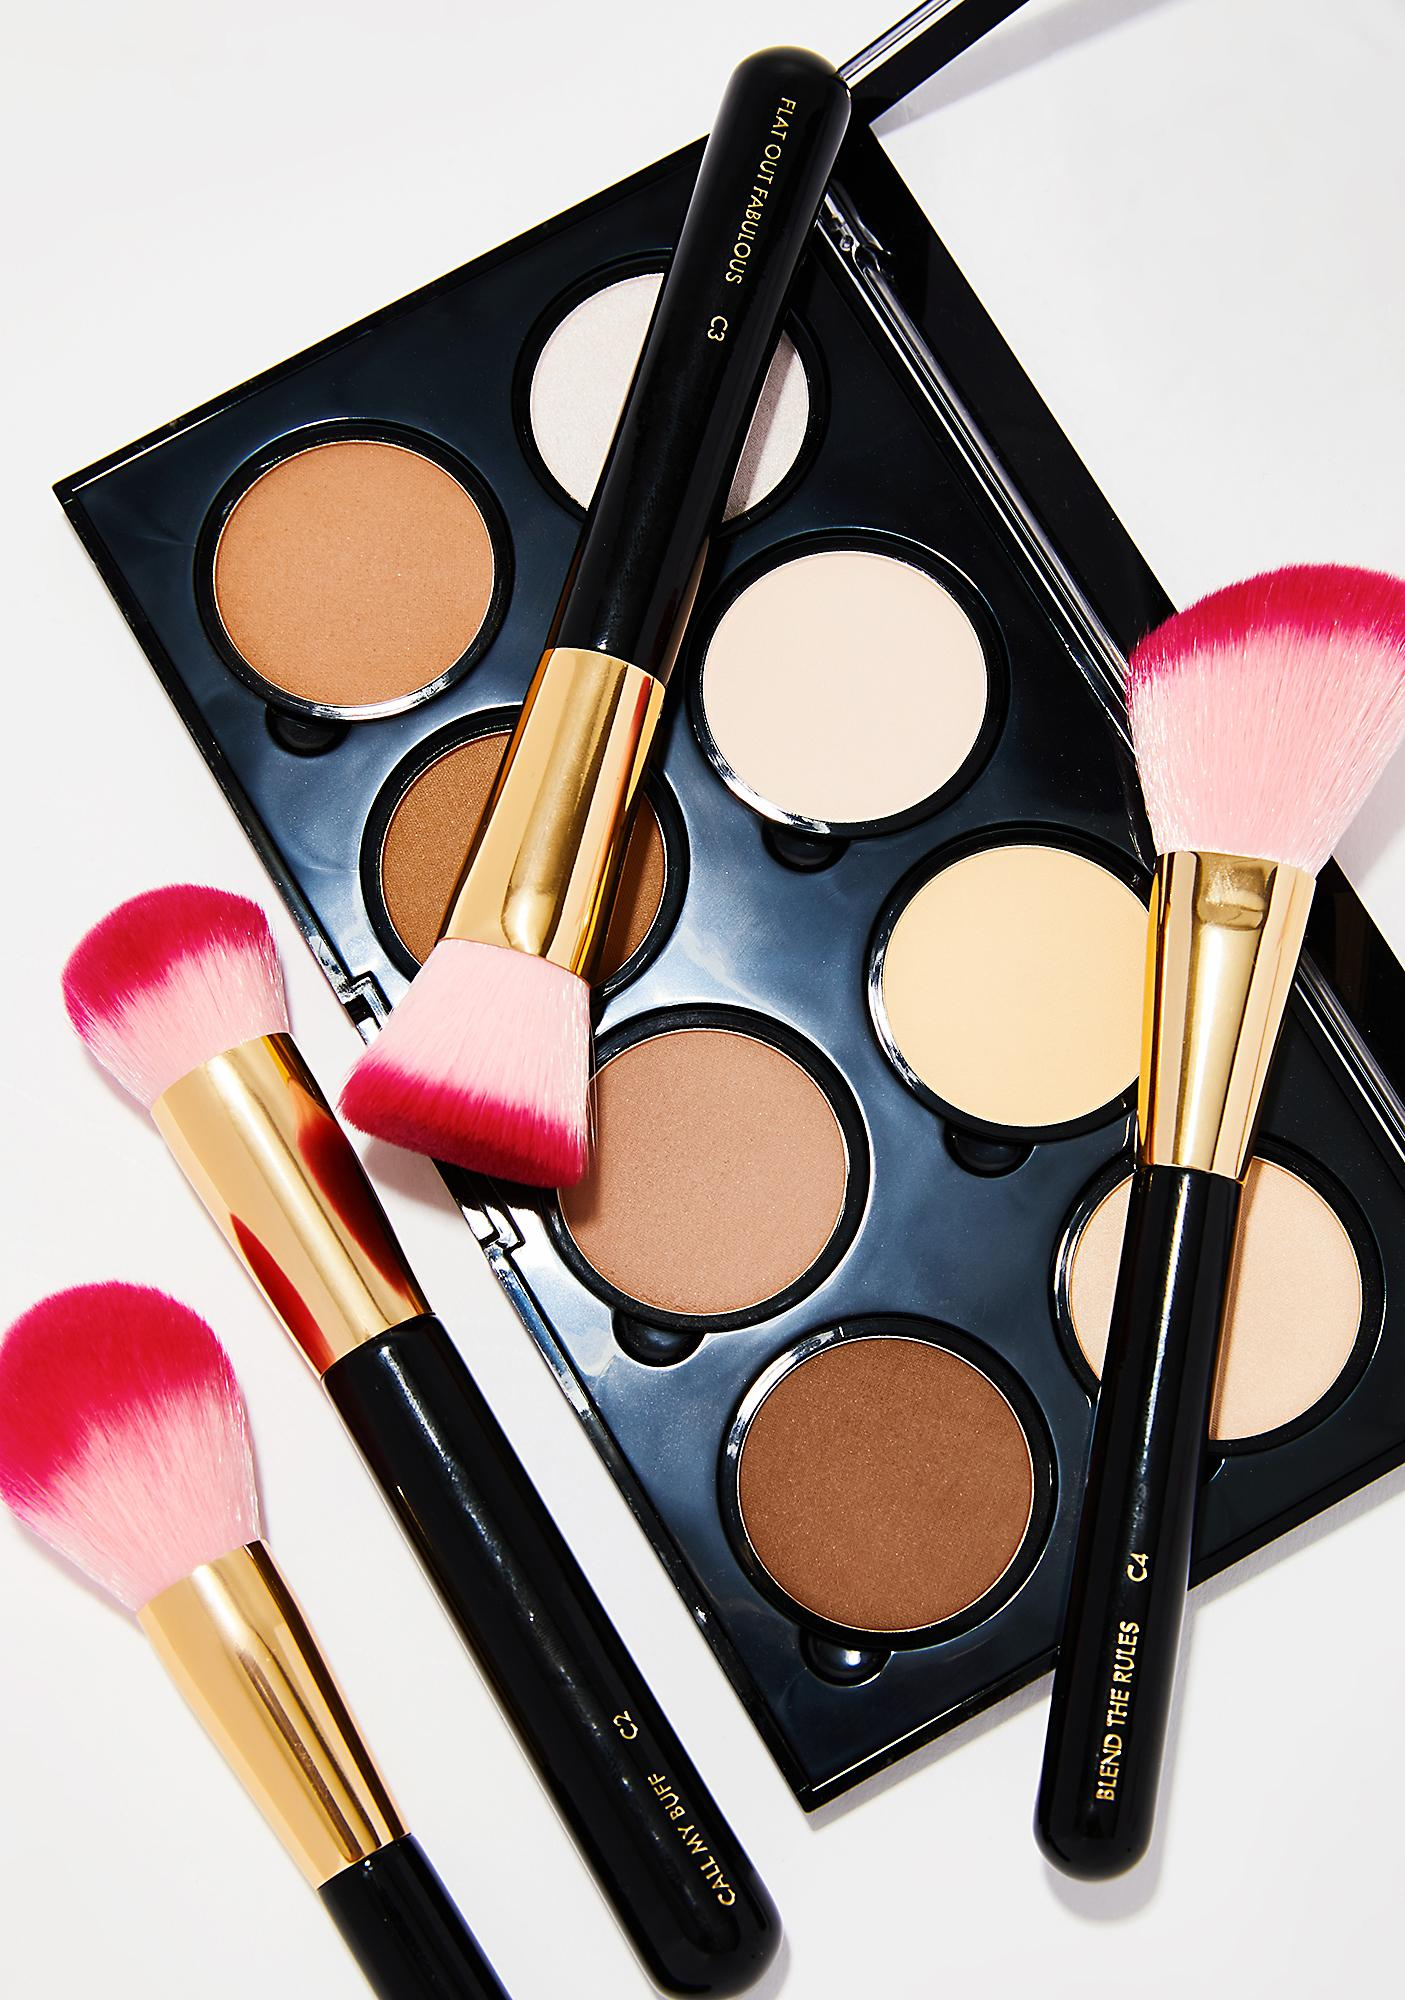 Skinnydip Luxe Shut The Contour Brush Set